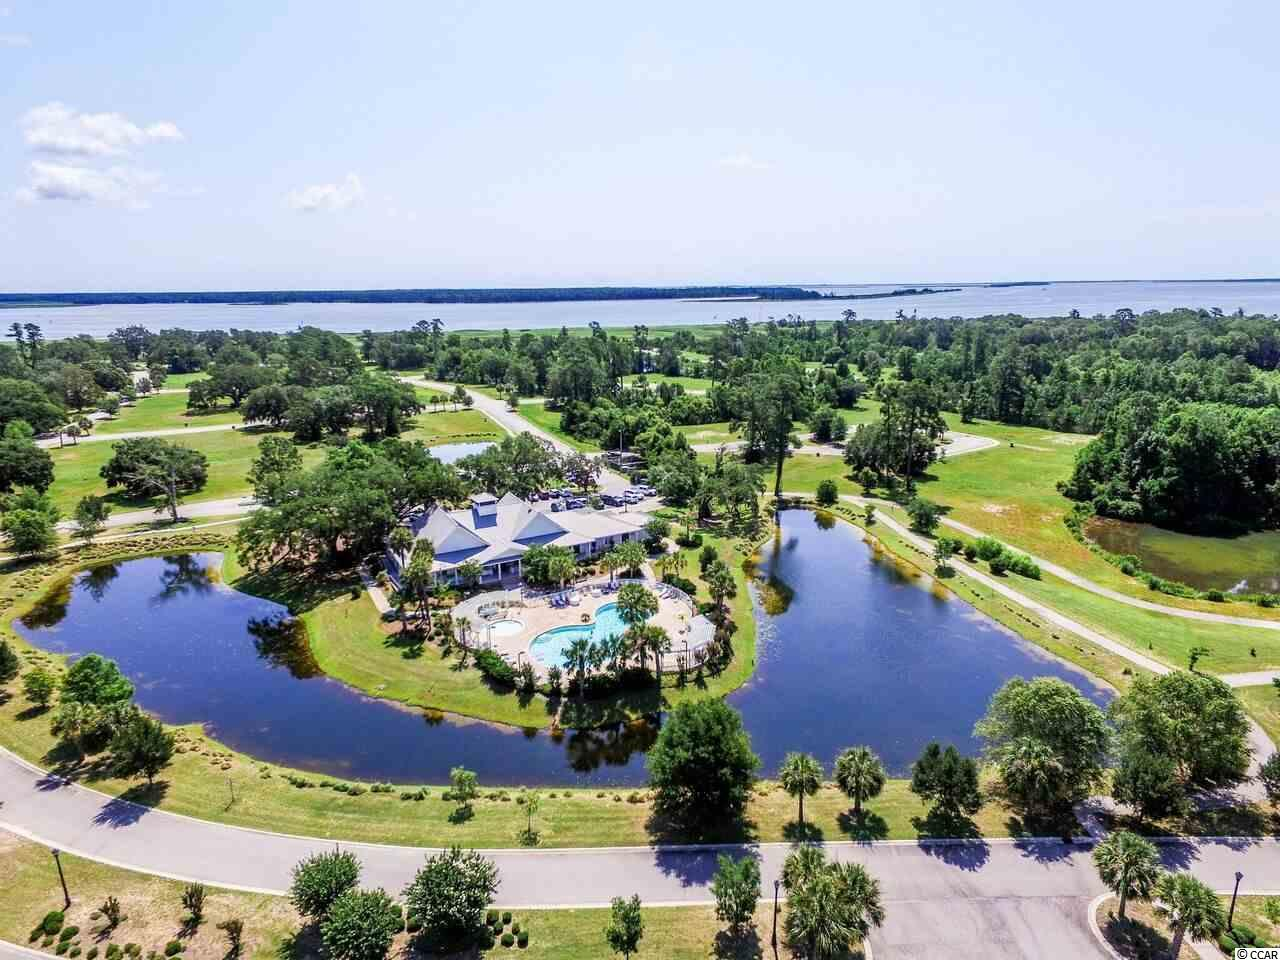 Land for Sale at 2 Belle Rive Road 2 Belle Rive Road Georgetown, South Carolina 29440 United States